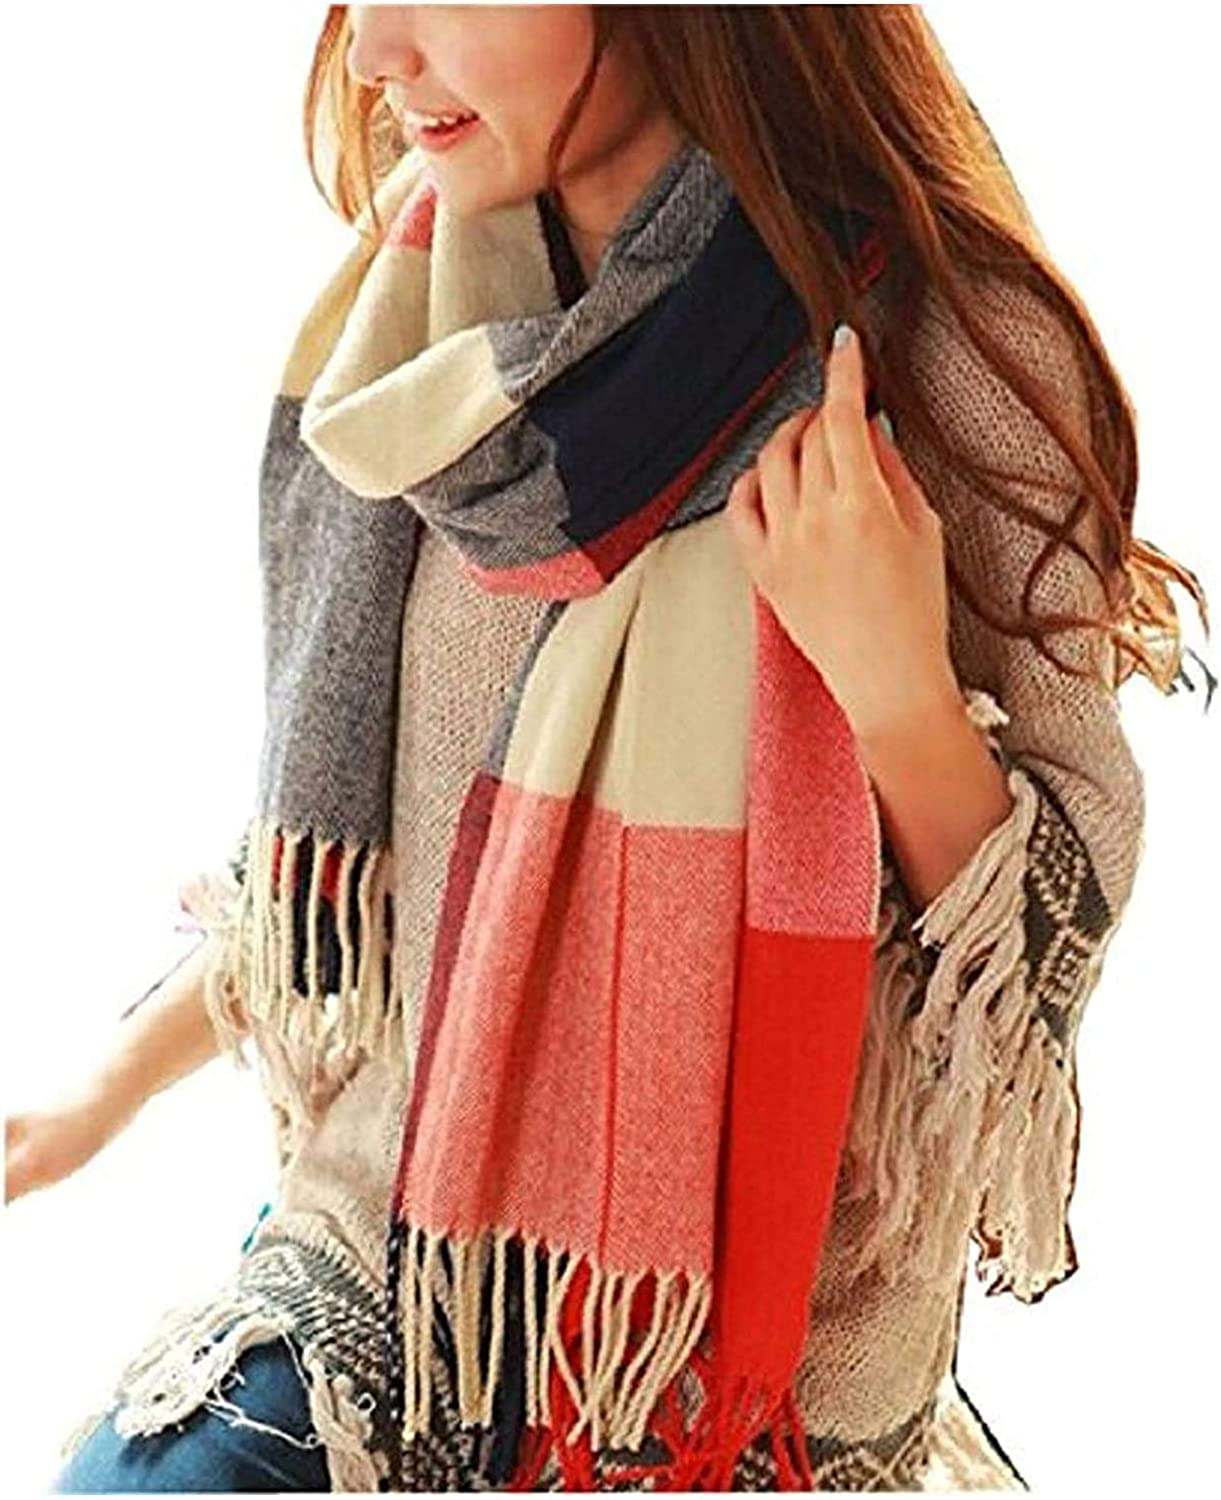 Women's Scarf Soft Scarf Women's Scarf MKLP Tassel Scarf Winter Ladies Scarf Large Warm Shawl Plaid Scarf Large Shawl Keep Warm and Prevent Cold Fringed